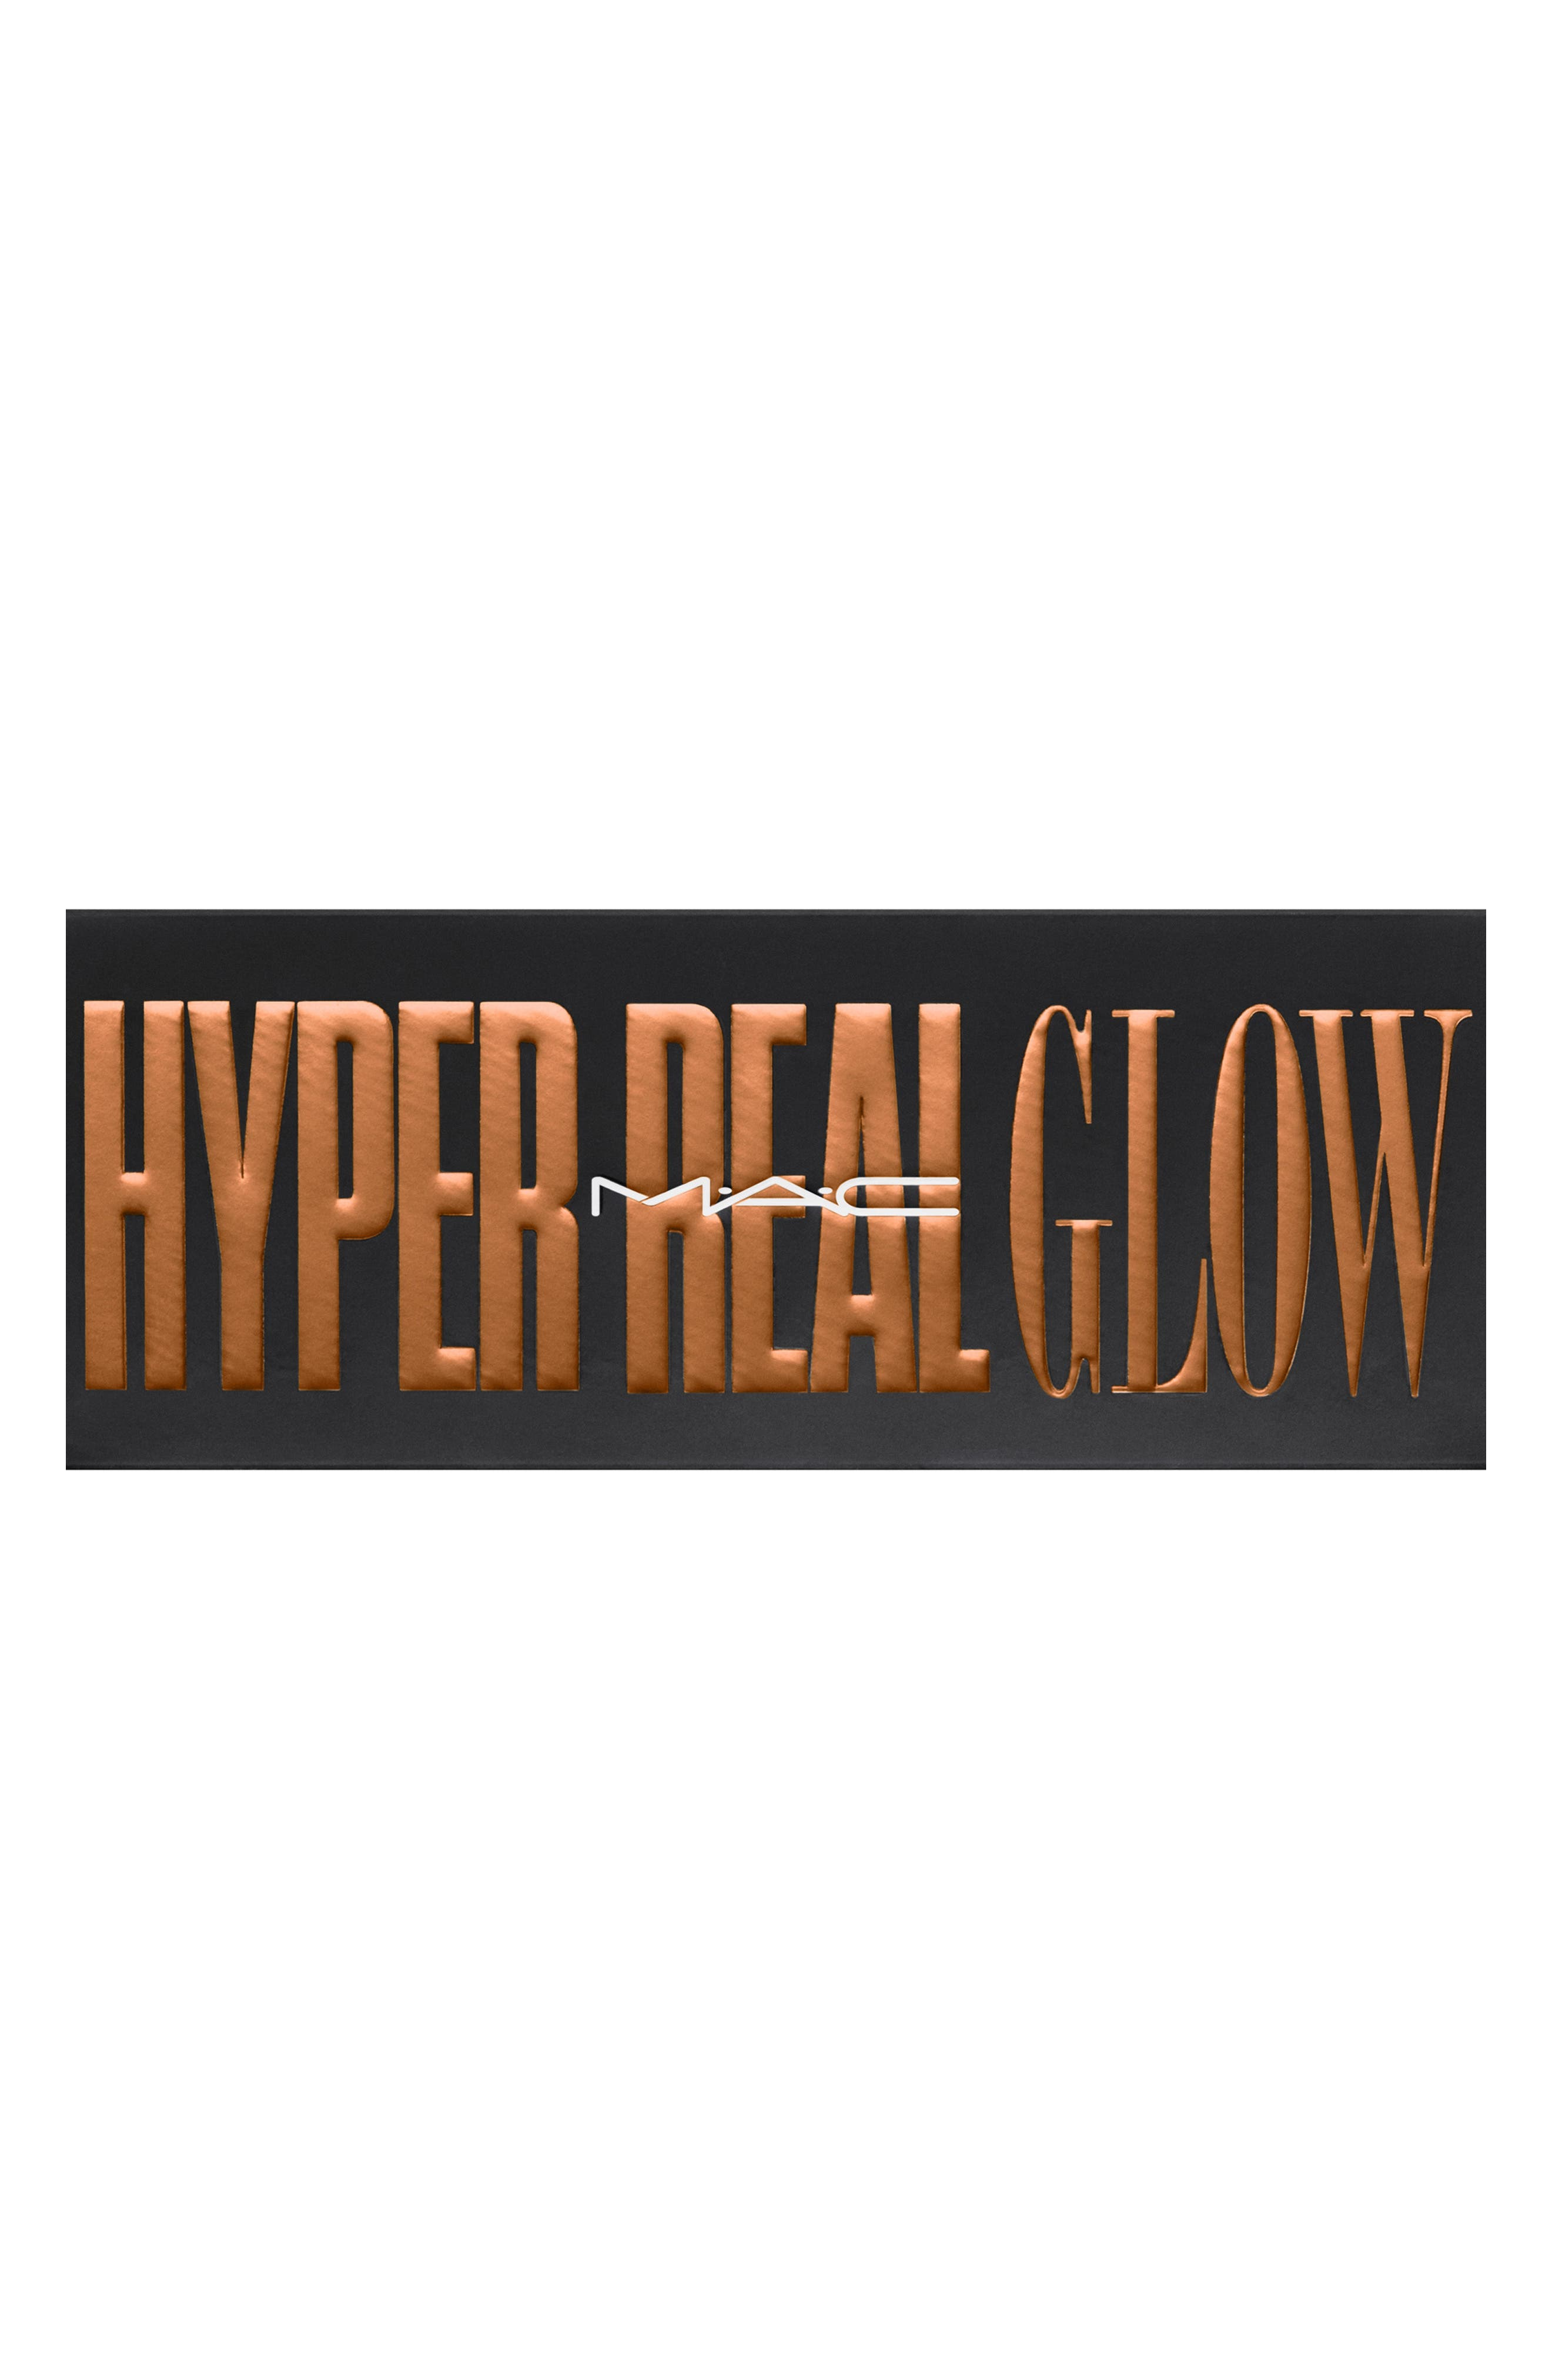 MAC Hyper Real Glow Palette,                             Alternate thumbnail 6, color,                             SHIMMY PEACH